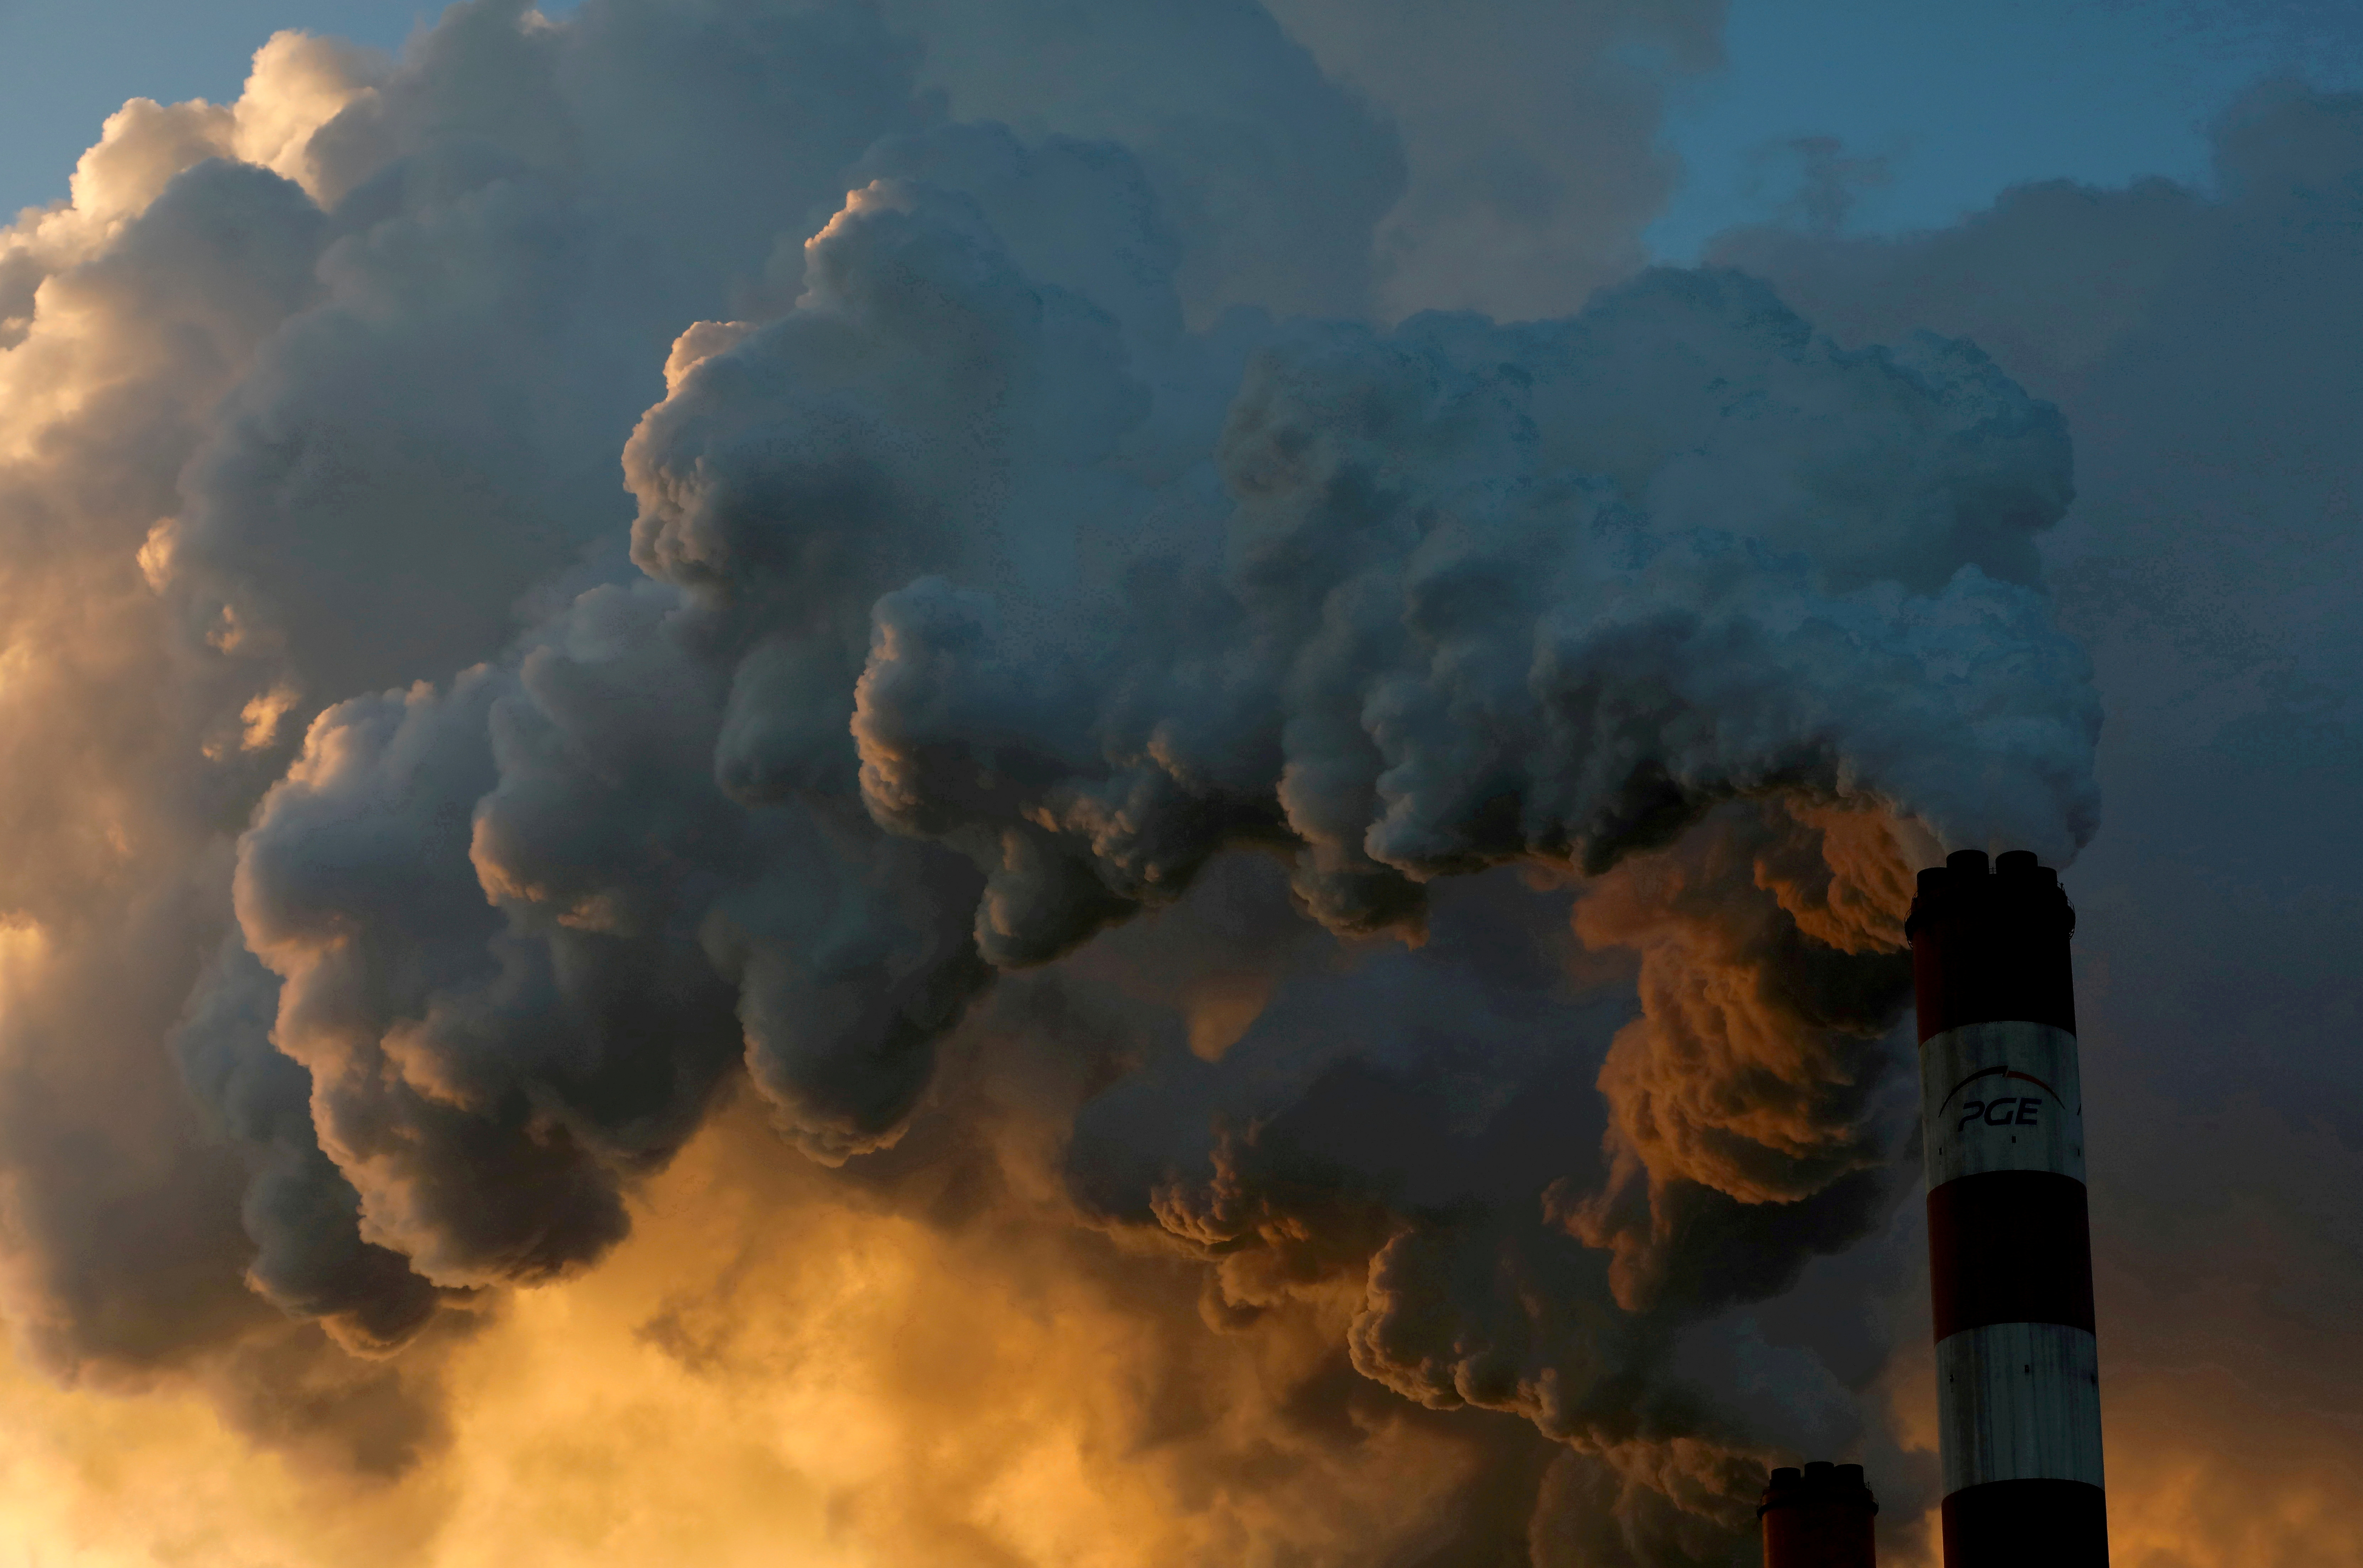 Smoke and steam billow from the Belchatow Power Station, Europe's largest coal-fired power plant, near Belchatow, Poland, November 28, 2018. REUTERS/Kacper Pempel